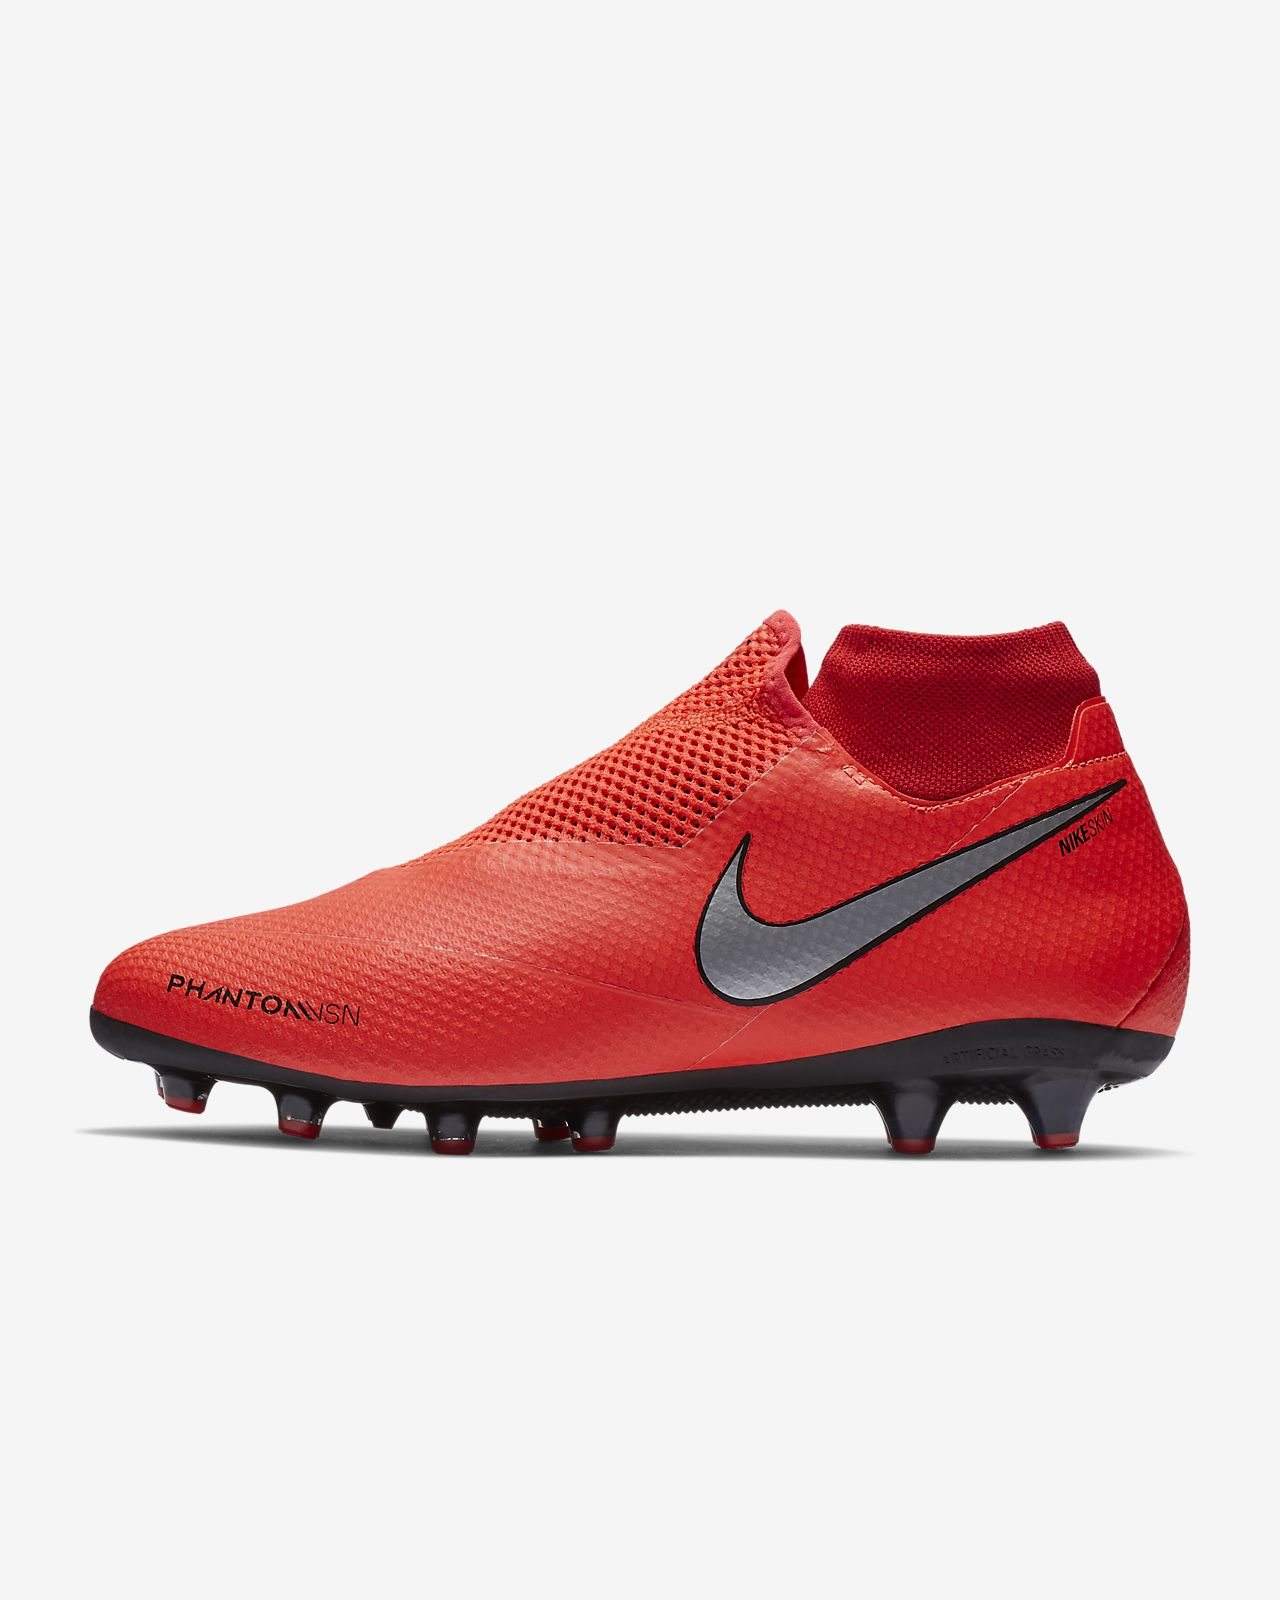 best website acdae 89d4a Nike Phantom Vision Pro Dynamic Fit AG-PRO Botas de fútbol para césped  artificial